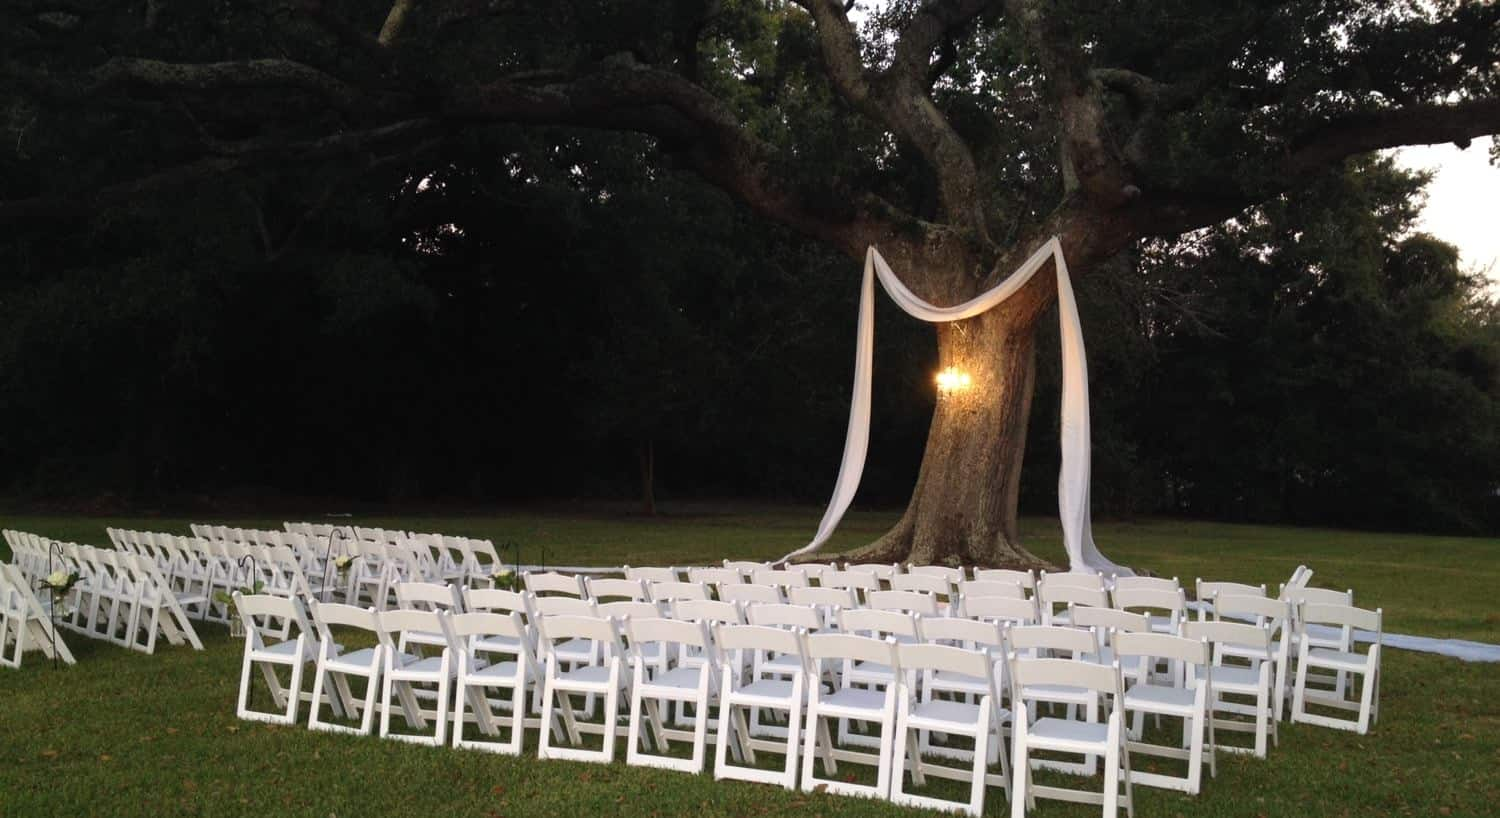 Outdoor wedding setup, rows of white chairs on grass, center aisle leading to tree with hanging light and sheer fabric